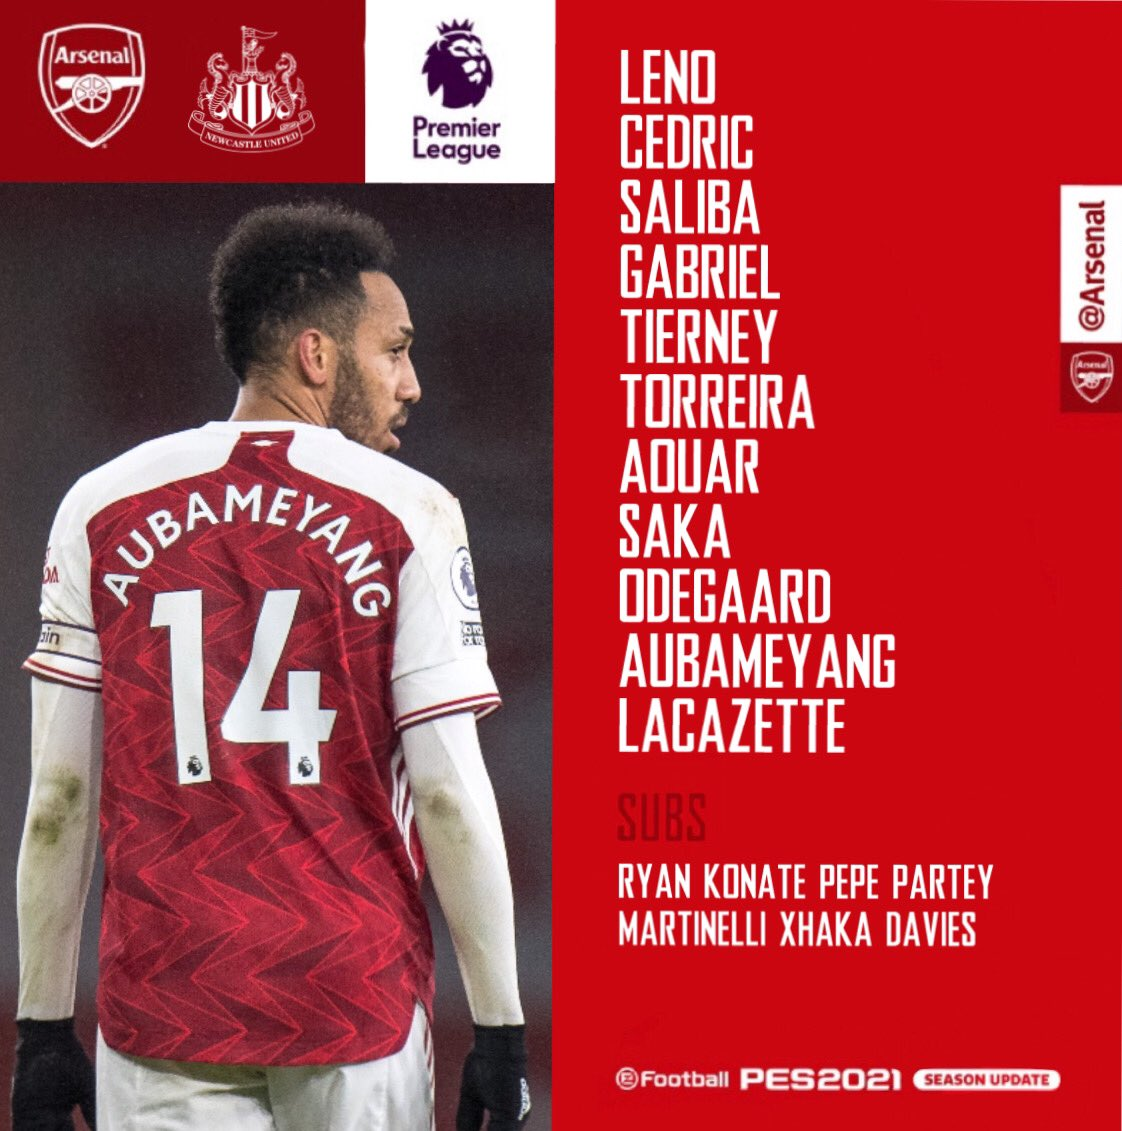 📋 Team news for today...  🇵🇹 Cedric fills in at fullback  🇫🇷 Lacazette starts up top 🇺🇾 Torreira partners Aouar in the midfield  #ARSNEW